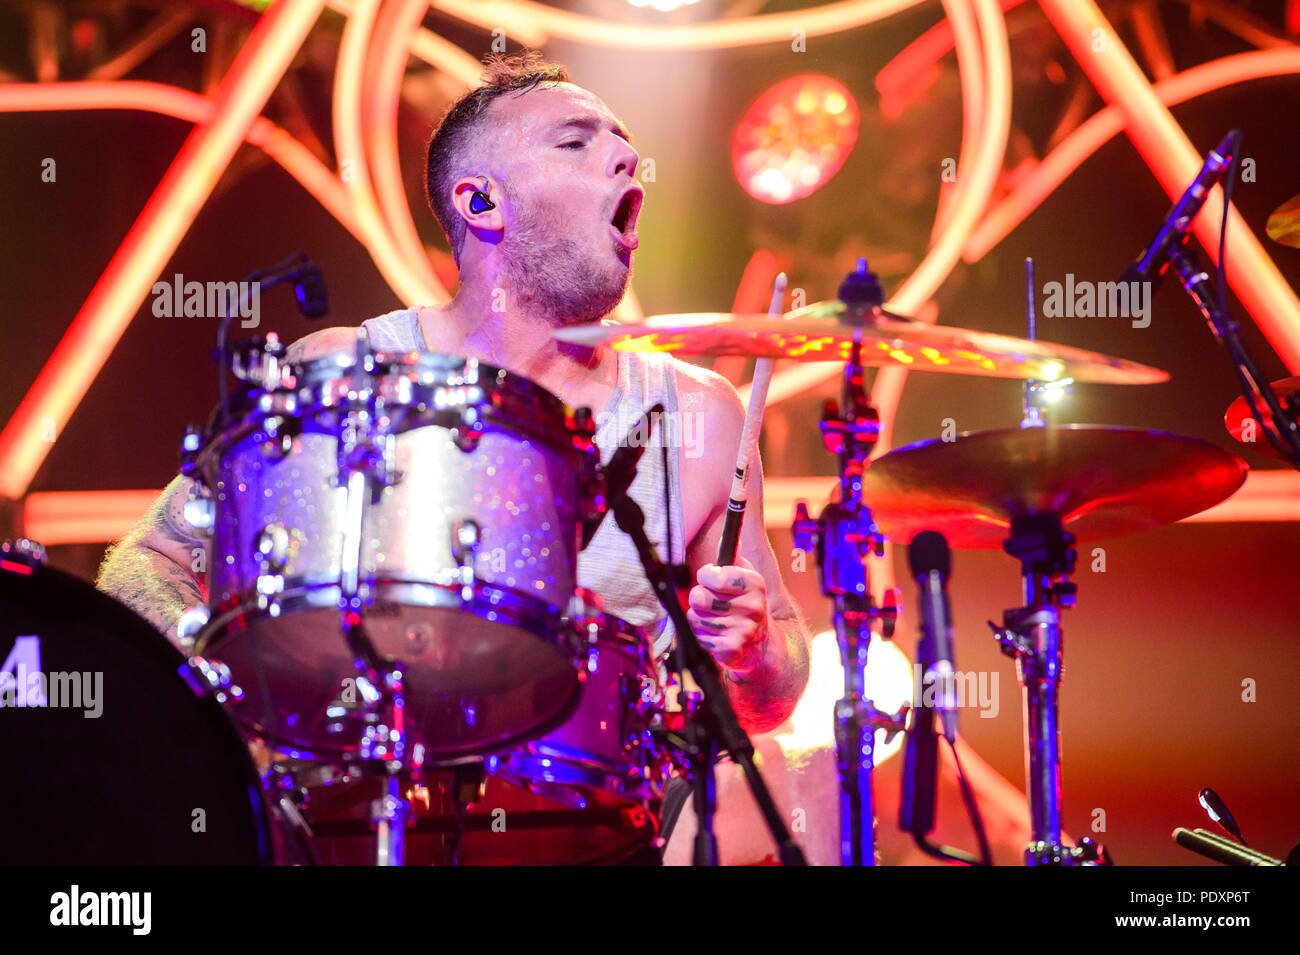 Las Vegas, NV, USA. 10th Aug, 2018. ***HOUSE COVERAGE*** Coheed and Cambria at The Joint at Hard Rock Hotel & Casino in Las vegas, NV on August 10, 2018. Credit: Gdp Photos/Media Punch/Alamy Live News Stock Photo